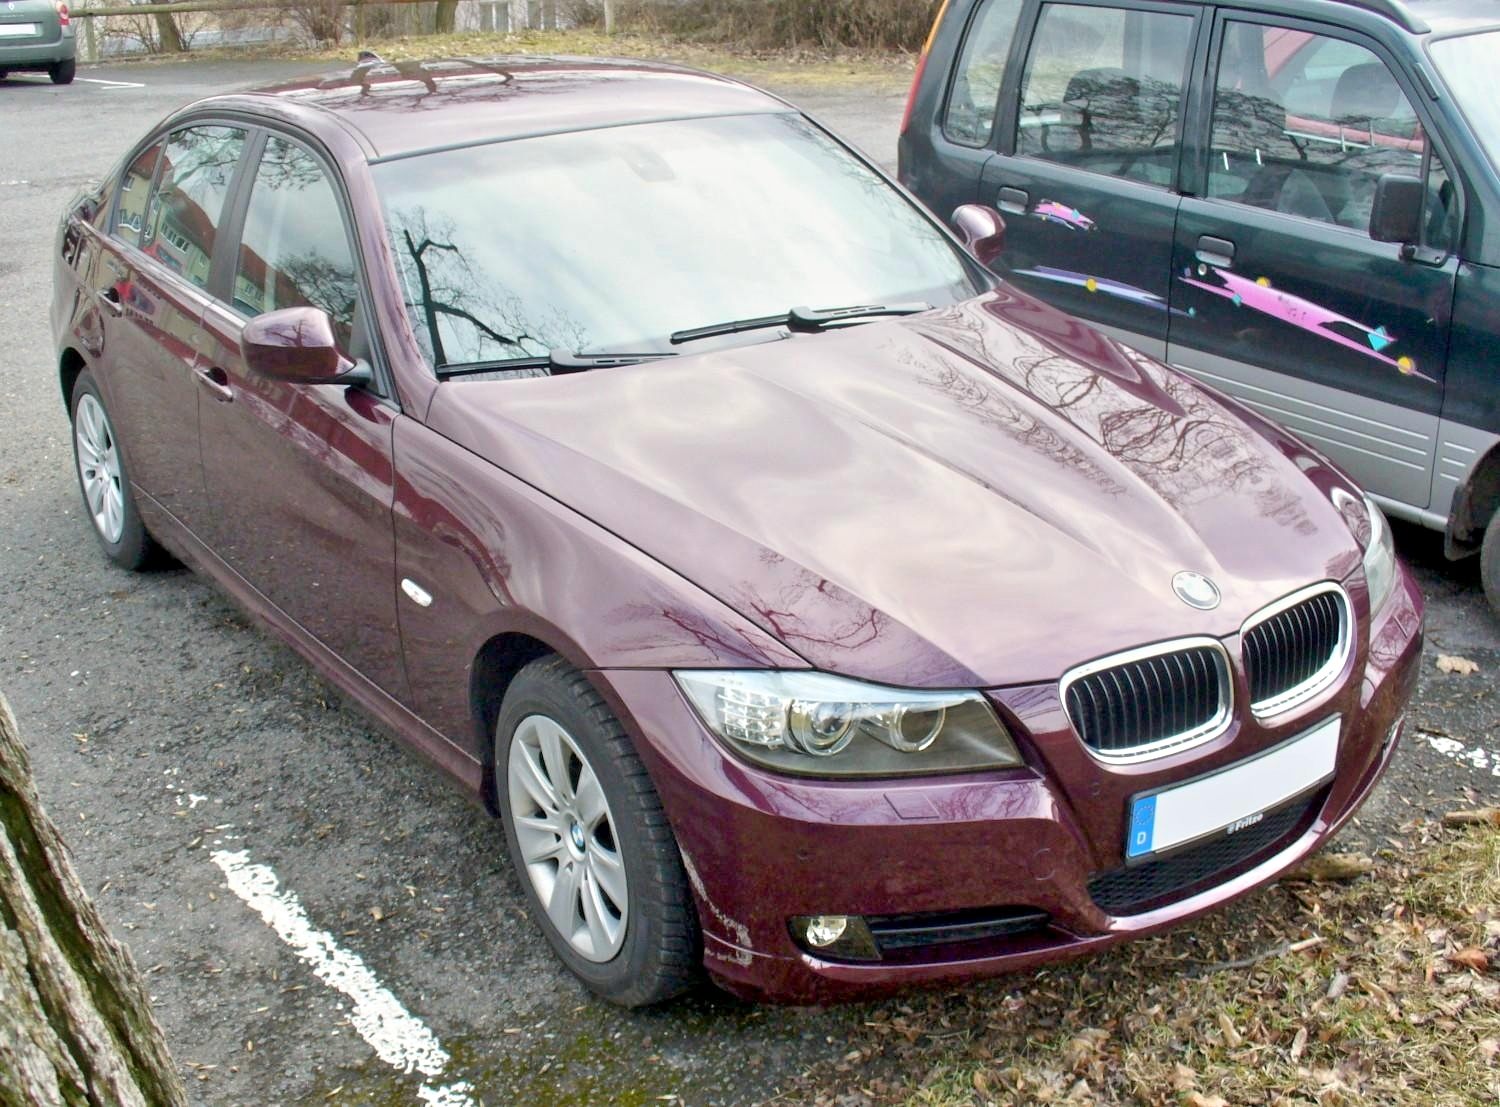 file bmw e90 320d limousine barberarot facelift jpg wikimedia commons. Black Bedroom Furniture Sets. Home Design Ideas